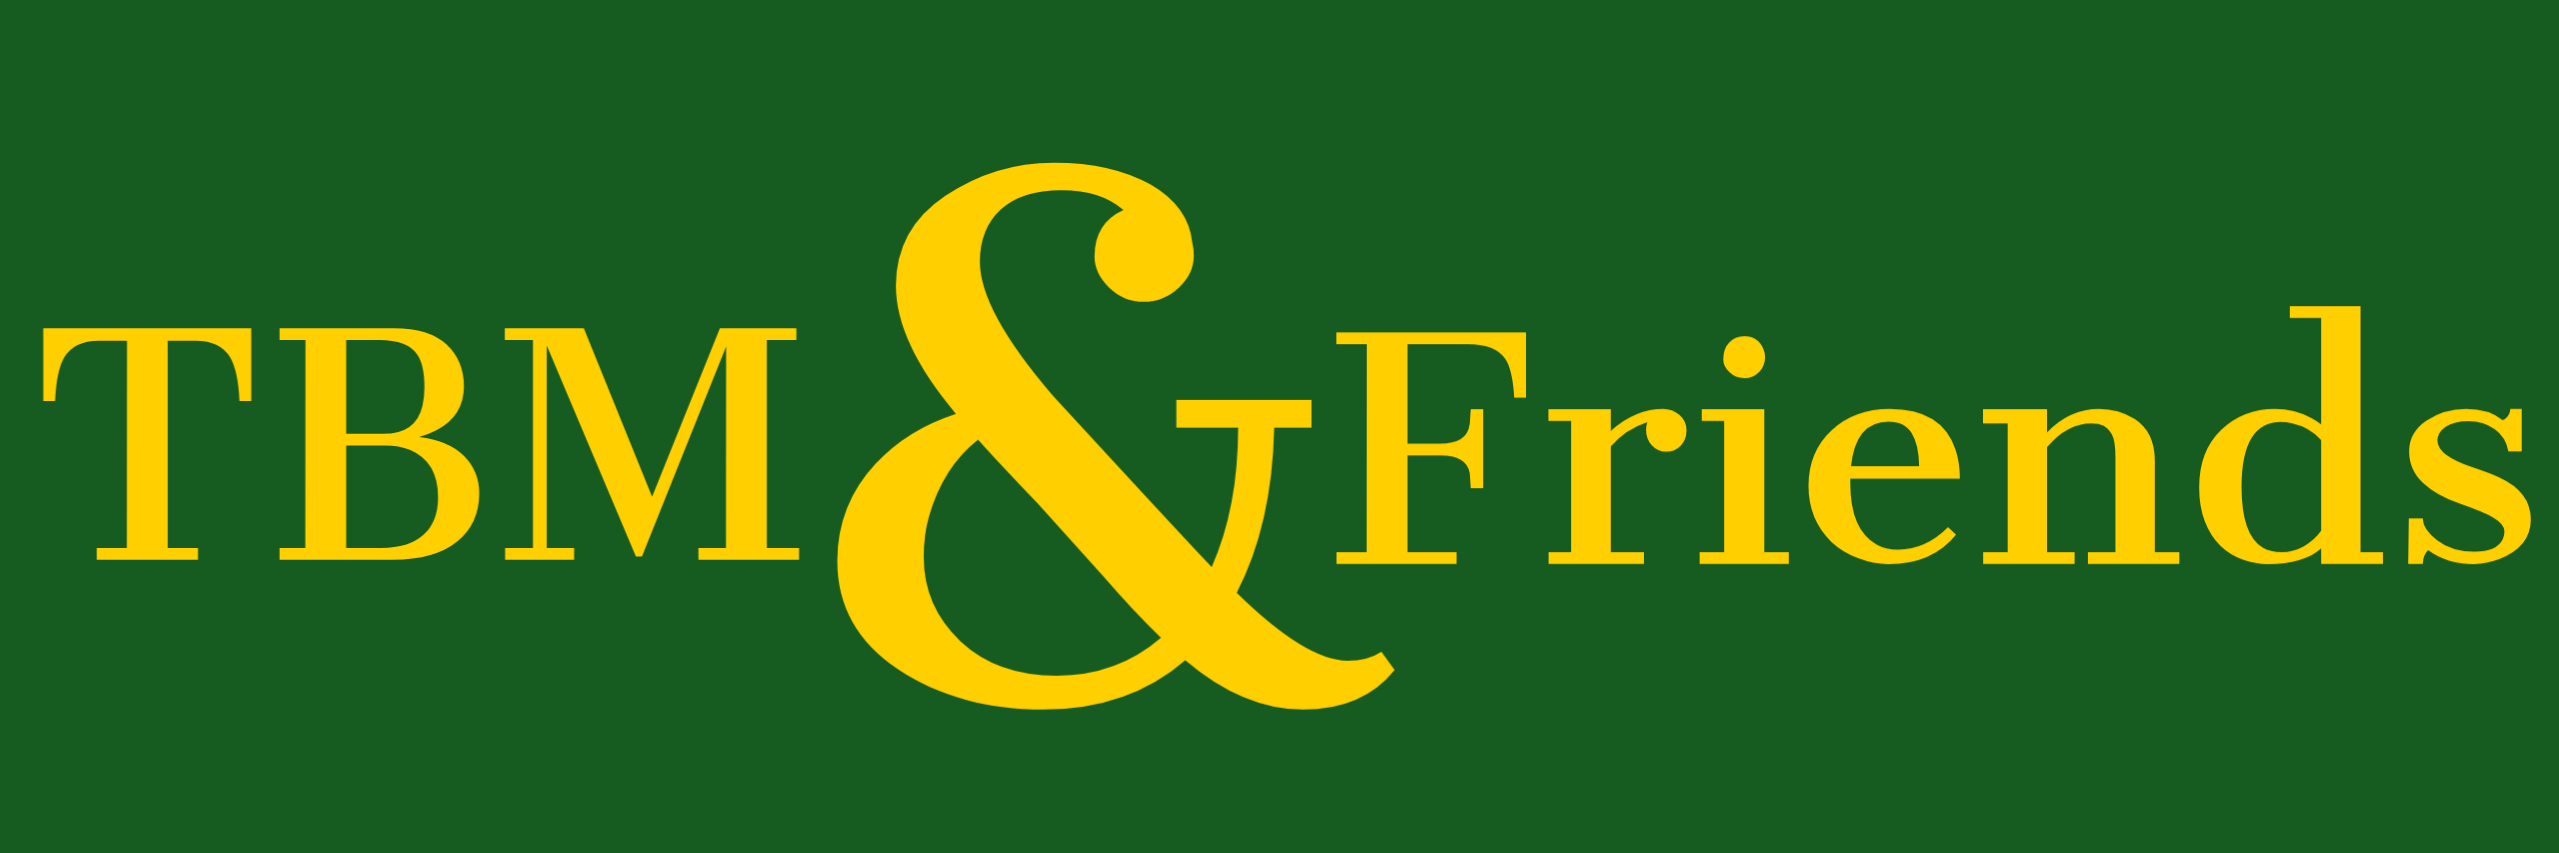 TBM and Friends Logo, gold ampersand on dark green background with gold TBM at left and Friends at right